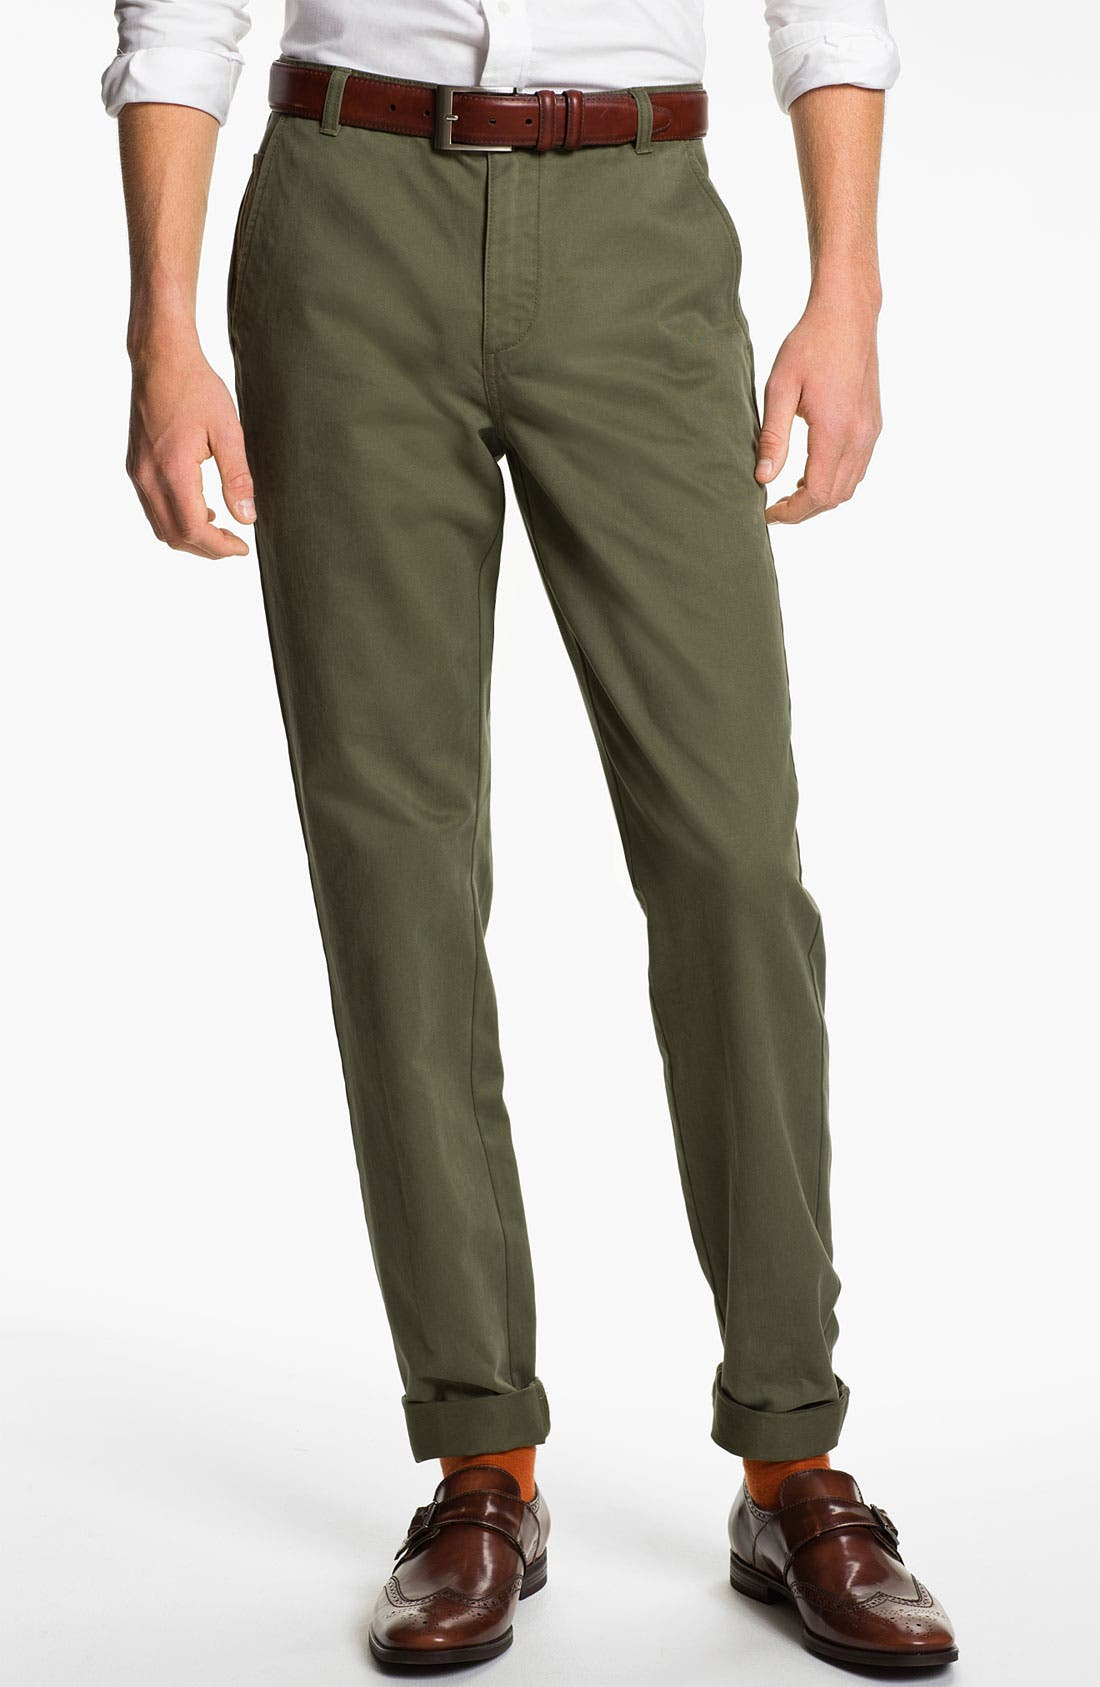 Alternate Image 1 Selected - Brooks Brothers 'University' Slim Fit Chinos